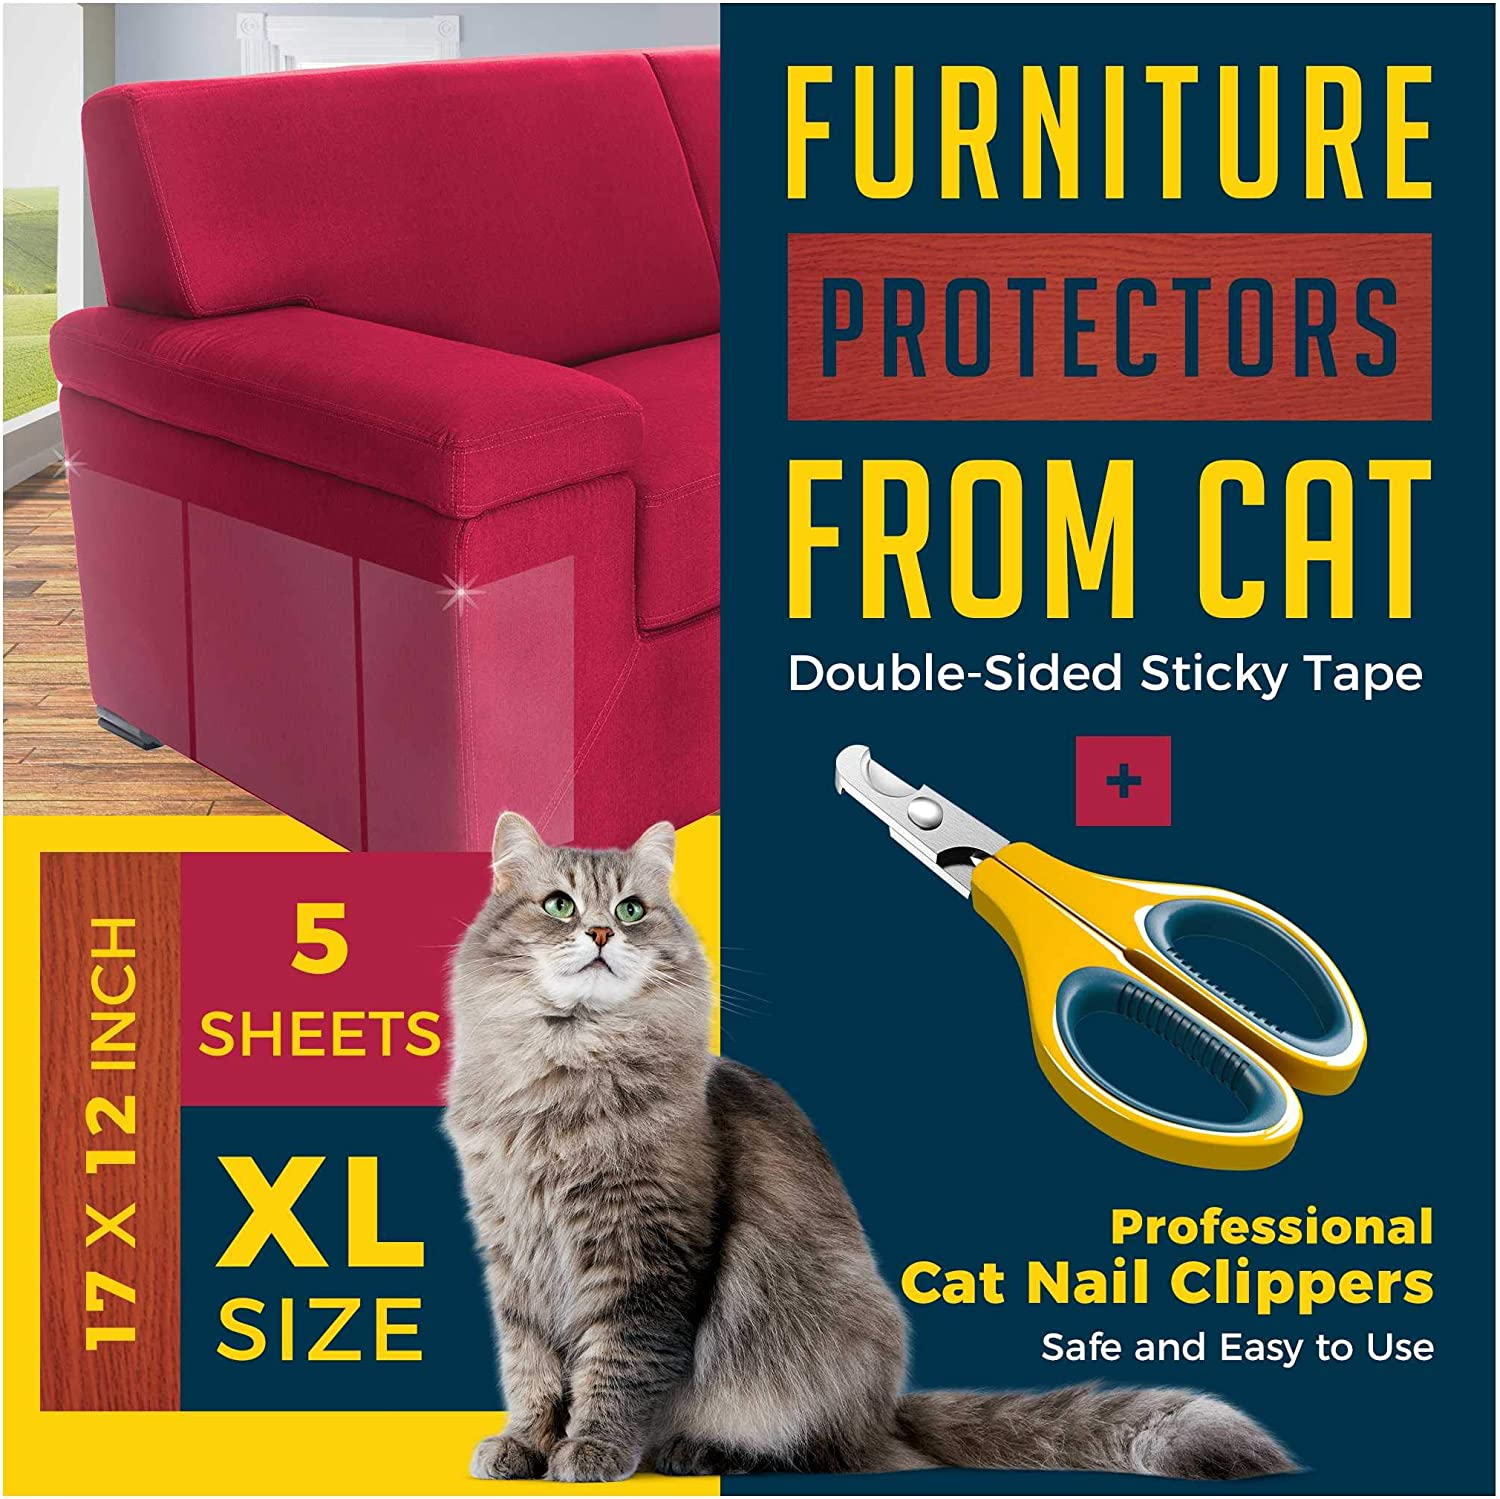 Anti Cat Scratch Furniture Protector-Useful Nail Clippers Easy to Handle-5 Highly Effective Huge Clear Double Sided Training Tape Couch Protector from Cats- All You Need to Live Happily with Your Cat